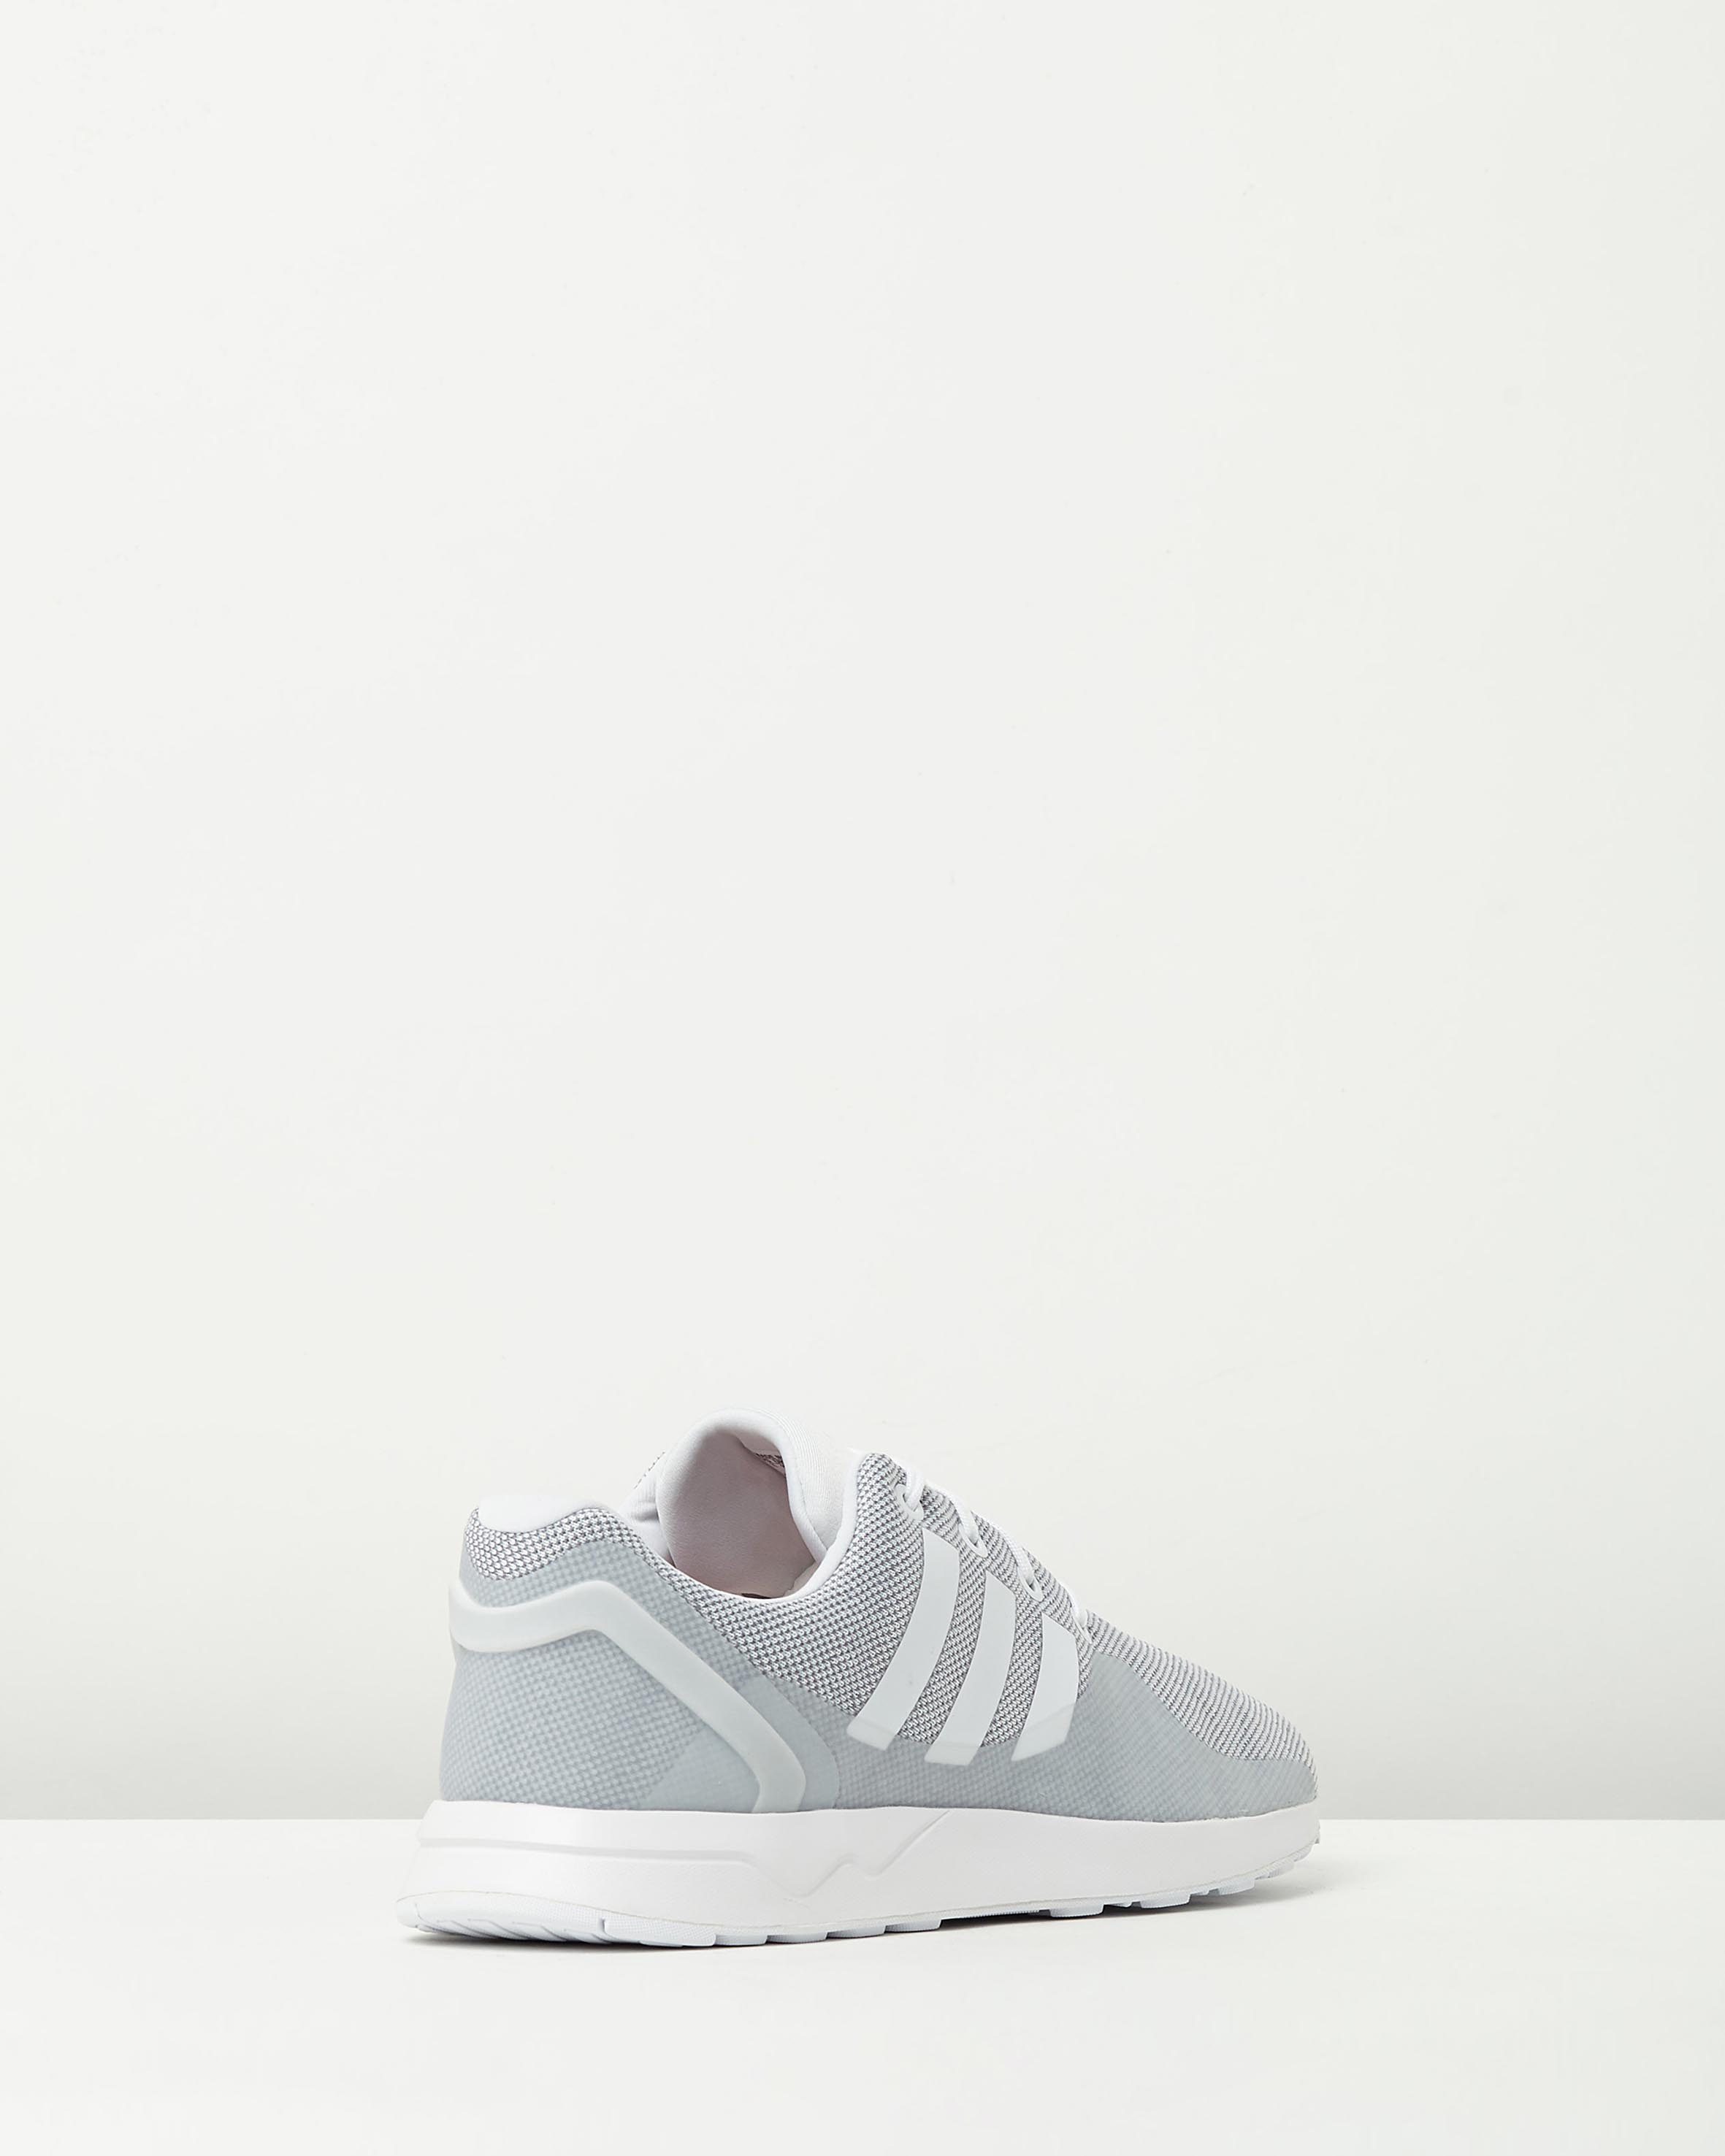 c37c174a04e61 ... Adidas Mens ZX Flux ADV Tech GREY WHITE 2 ...